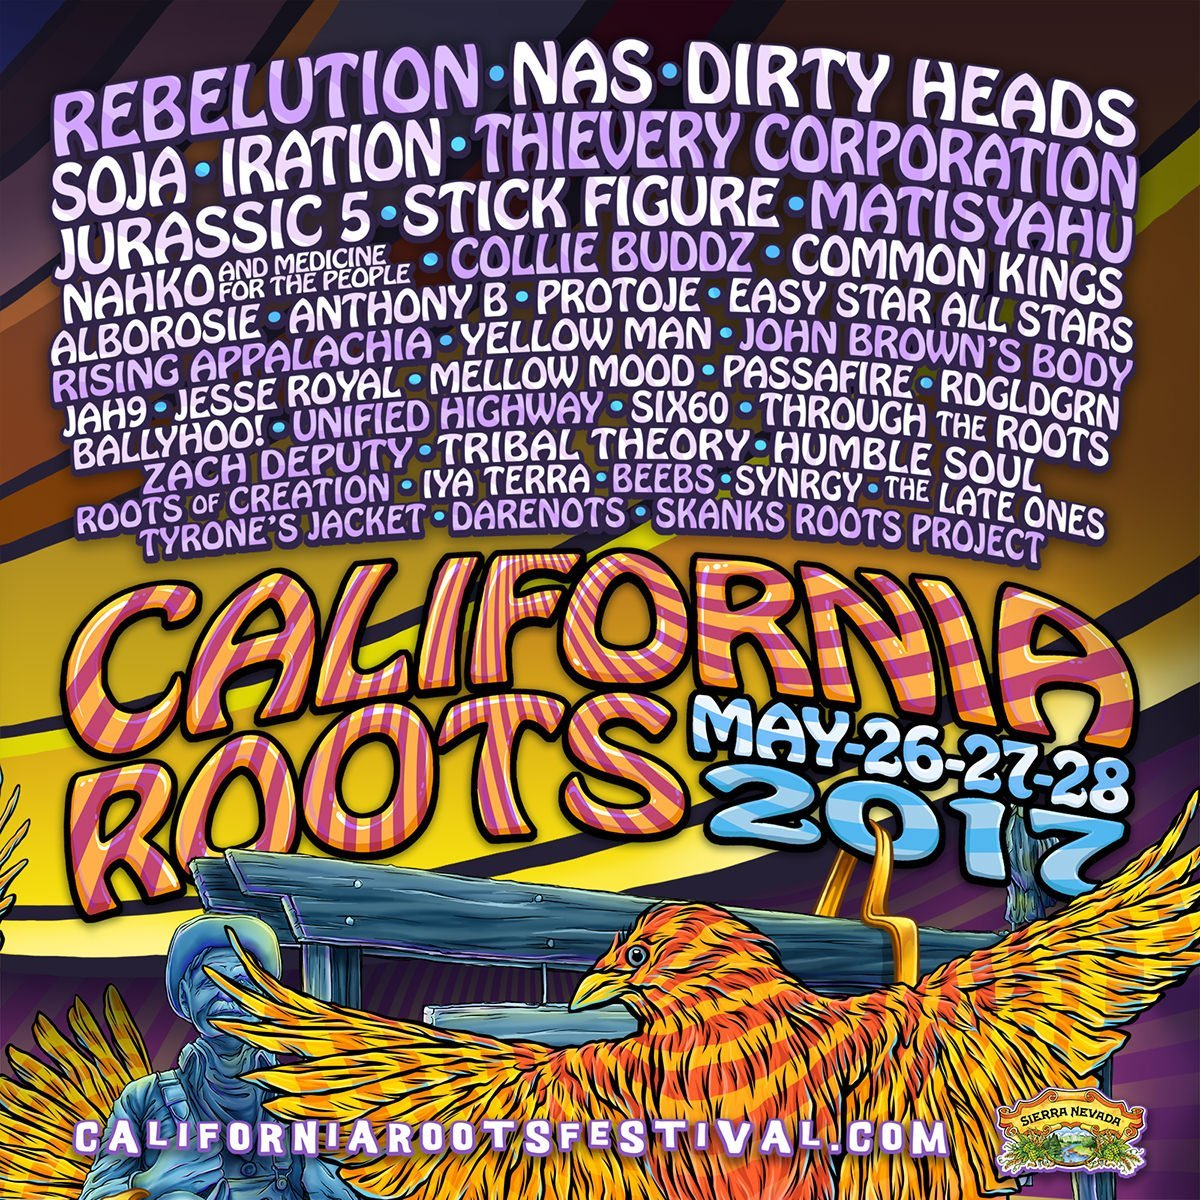 California Roots Festival May 26-28th 2017